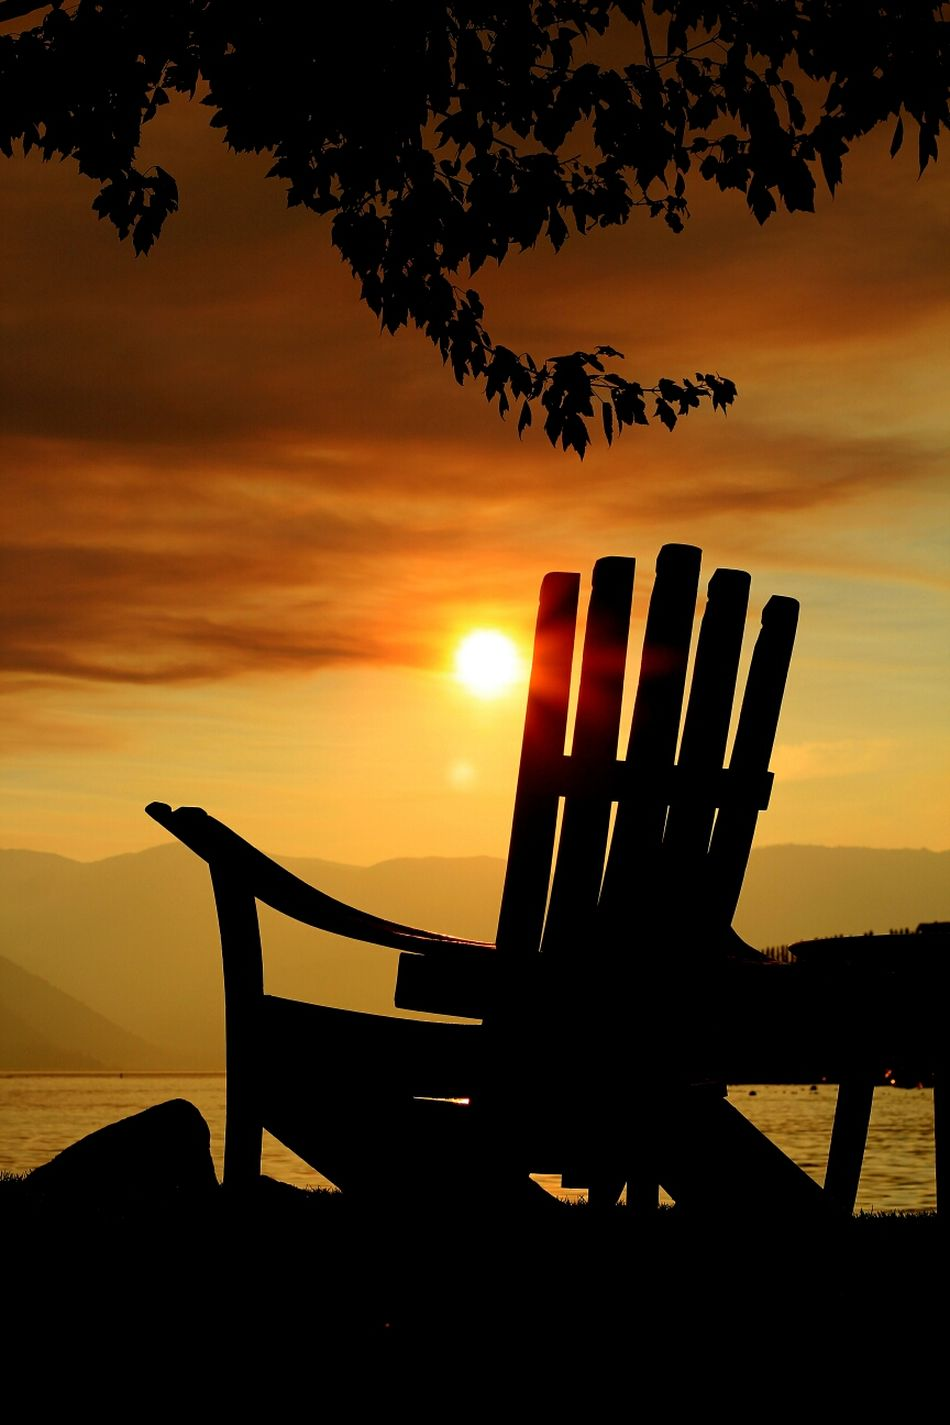 The Tourist and his chair. Traveler 43 Golden Moments Tranquil Secluded  Lakeshore Tourism Tranquility Calming Adirondack Chairs Adirondack Relaxation Relaxing Travel Travel Stories Lake View Calmness Resort The Traveler - 2015 EyeEm Awards Deceptively Simple The Adventure Handbook Spring Into Spring Sunset Silhouettes Sunset Lake Chelan - Best Place On Earth. Hidden Gems